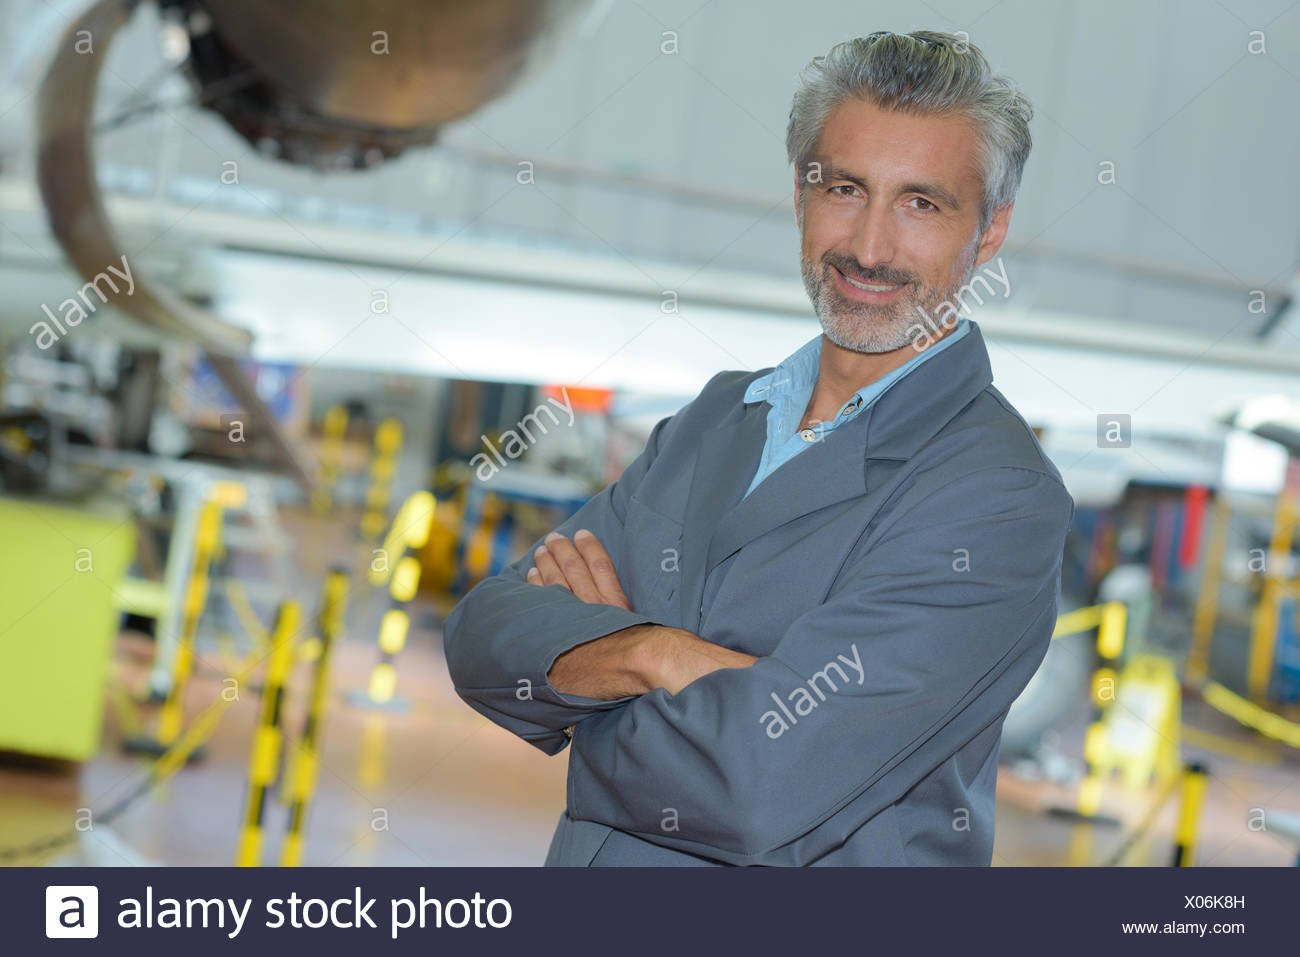 portrait of an aviation engineer in a hangar - Stock Image